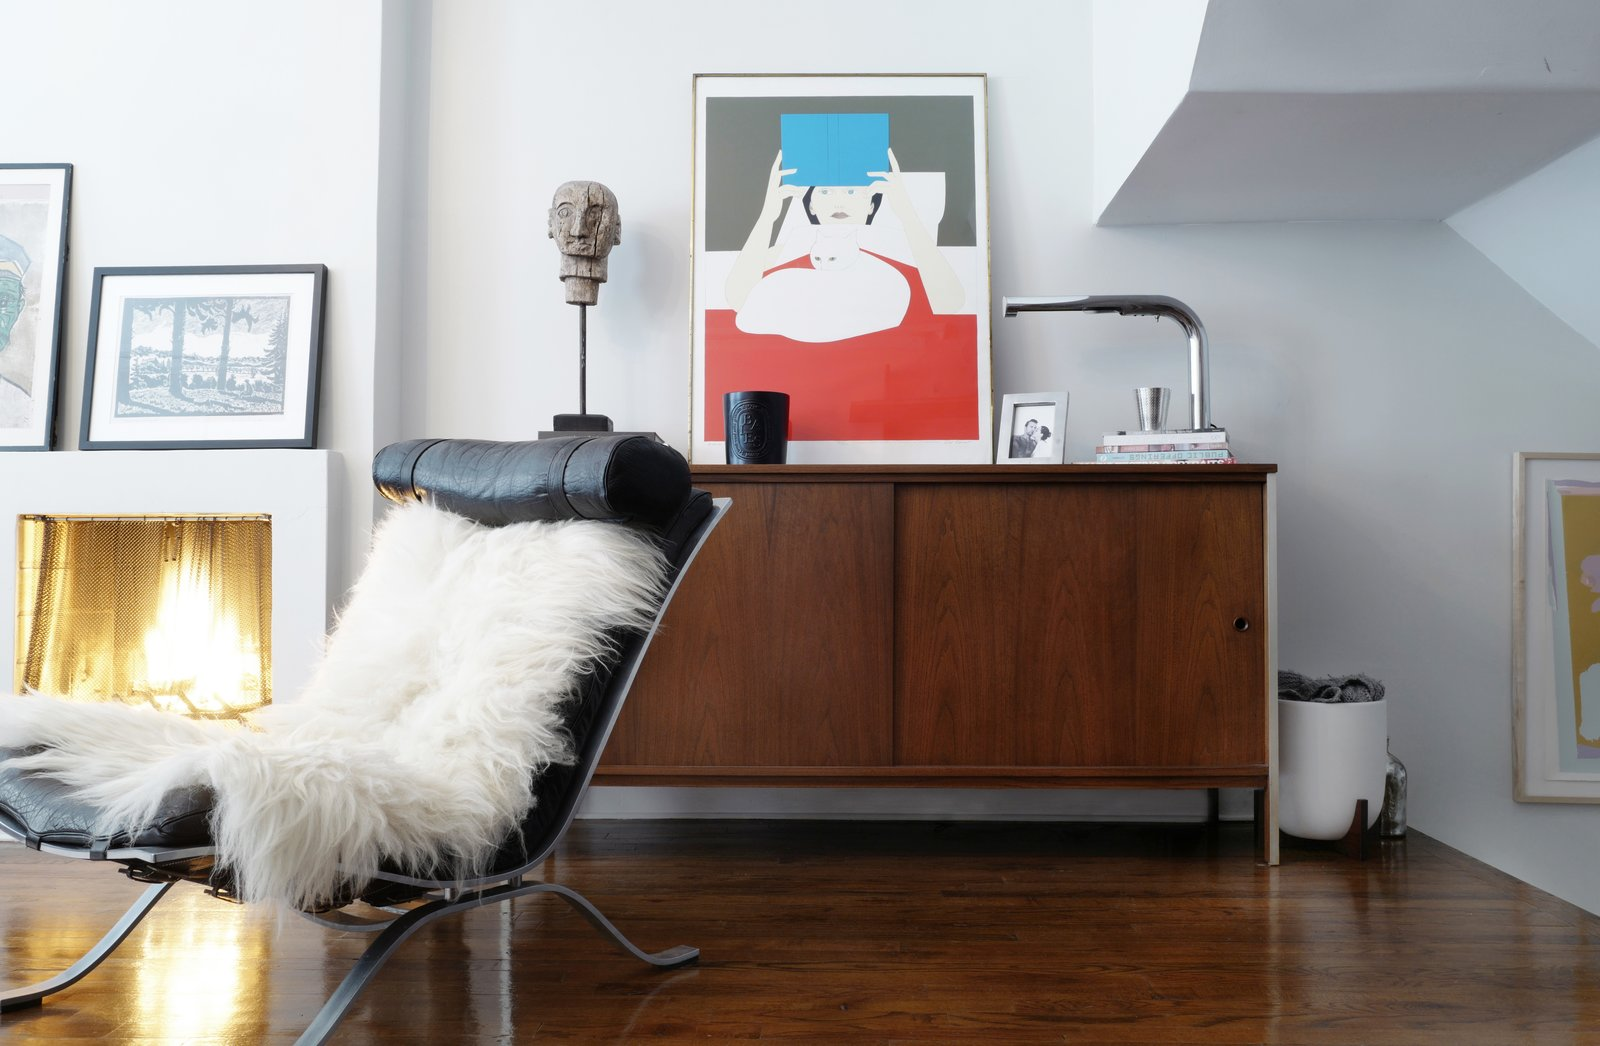 Photo 7 of 16 in A Design Duo's 19th-Century Brooklyn Townhouse Is Filled With Art They Love